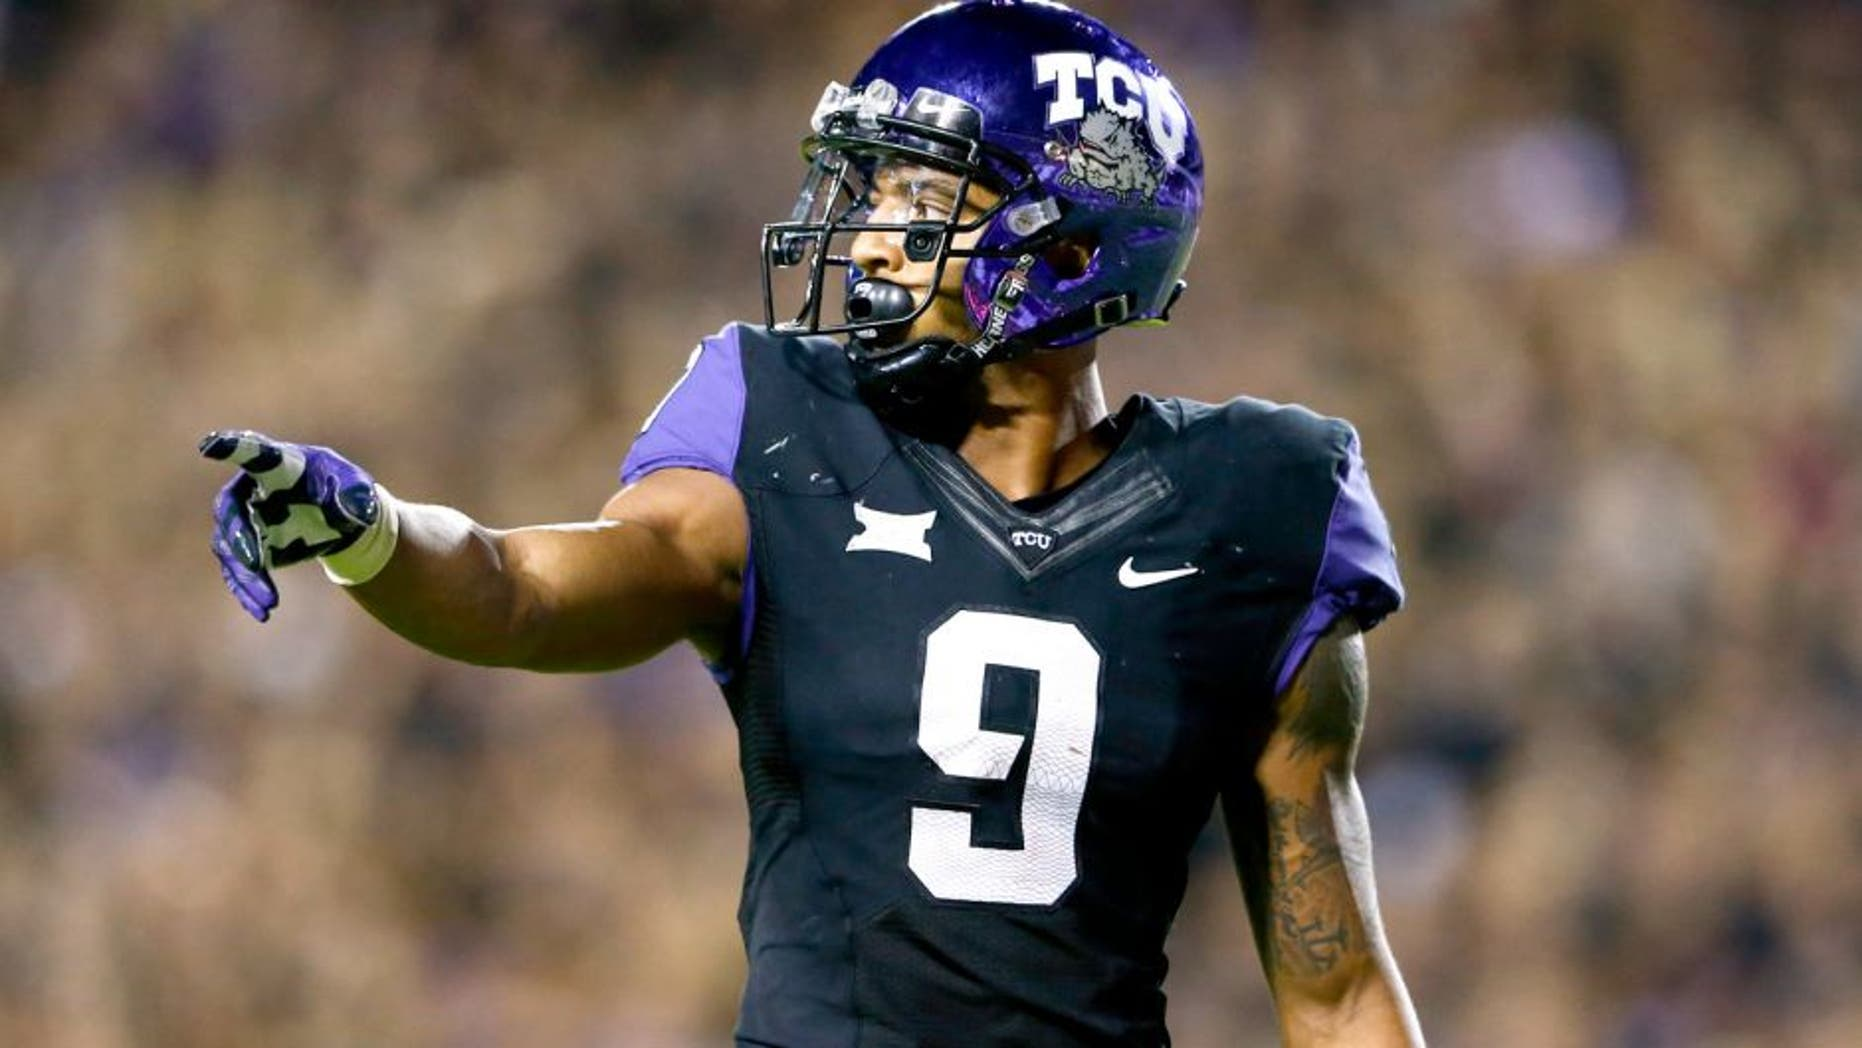 Oct 29, 2015; Fort Worth, TX, USA; TCU Horned Frogs wide receiver Josh Doctson (9) during the game against the West Virginia Mountaineers at Amon G. Carter Stadium. Mandatory Credit: Kevin Jairaj-USA TODAY Sports